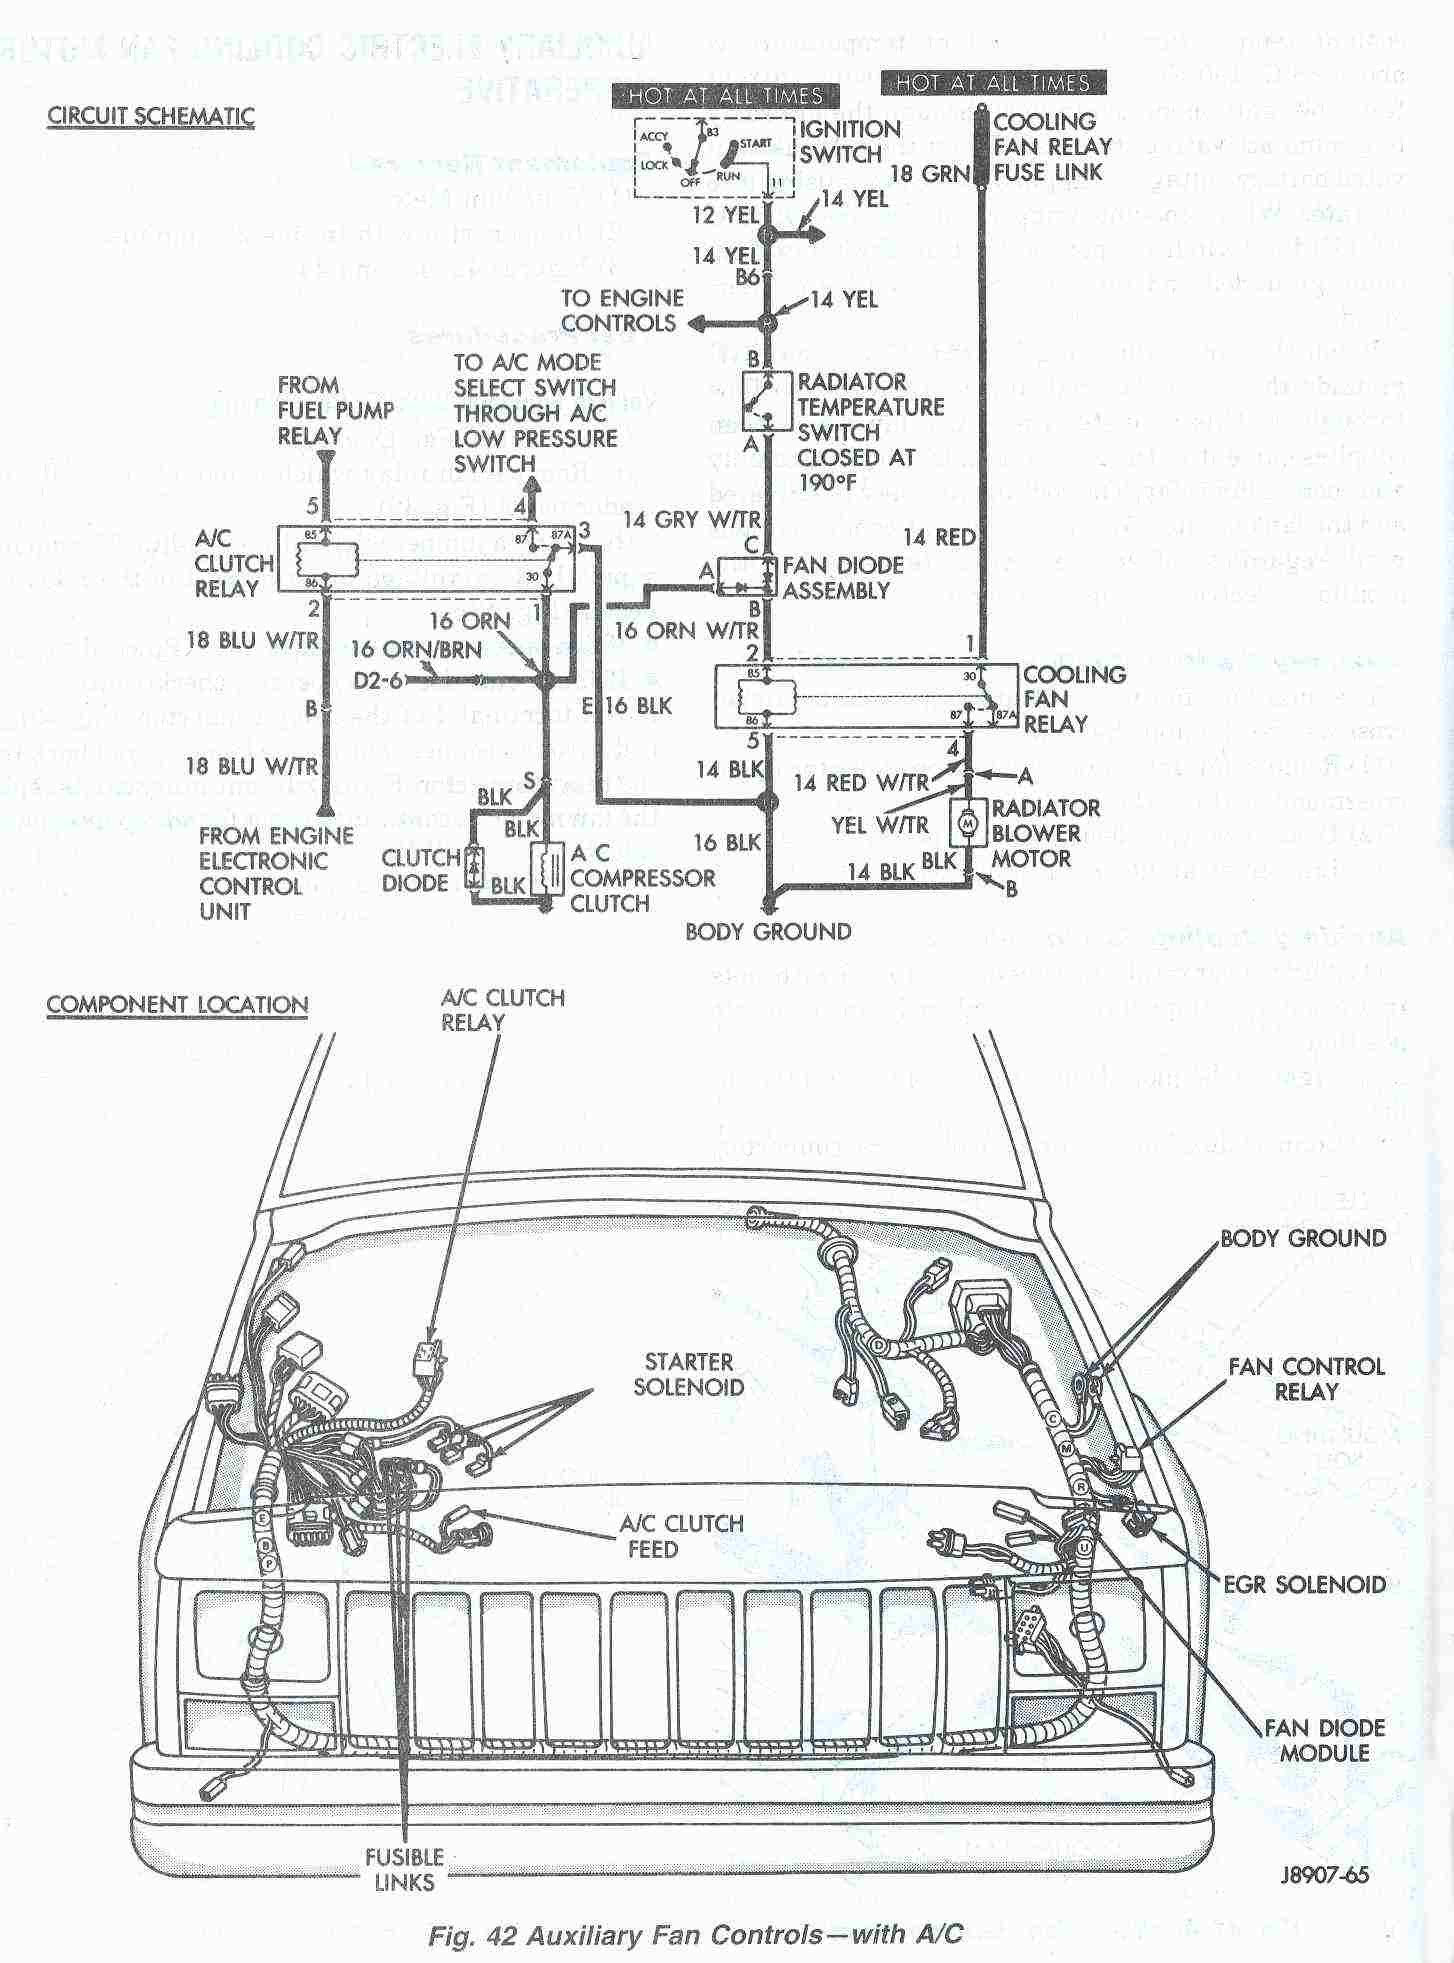 2004 Jeep Wrangler Engine Diagram Wiring For Ac Unit How To Connect Thermostat Along With Cherokee